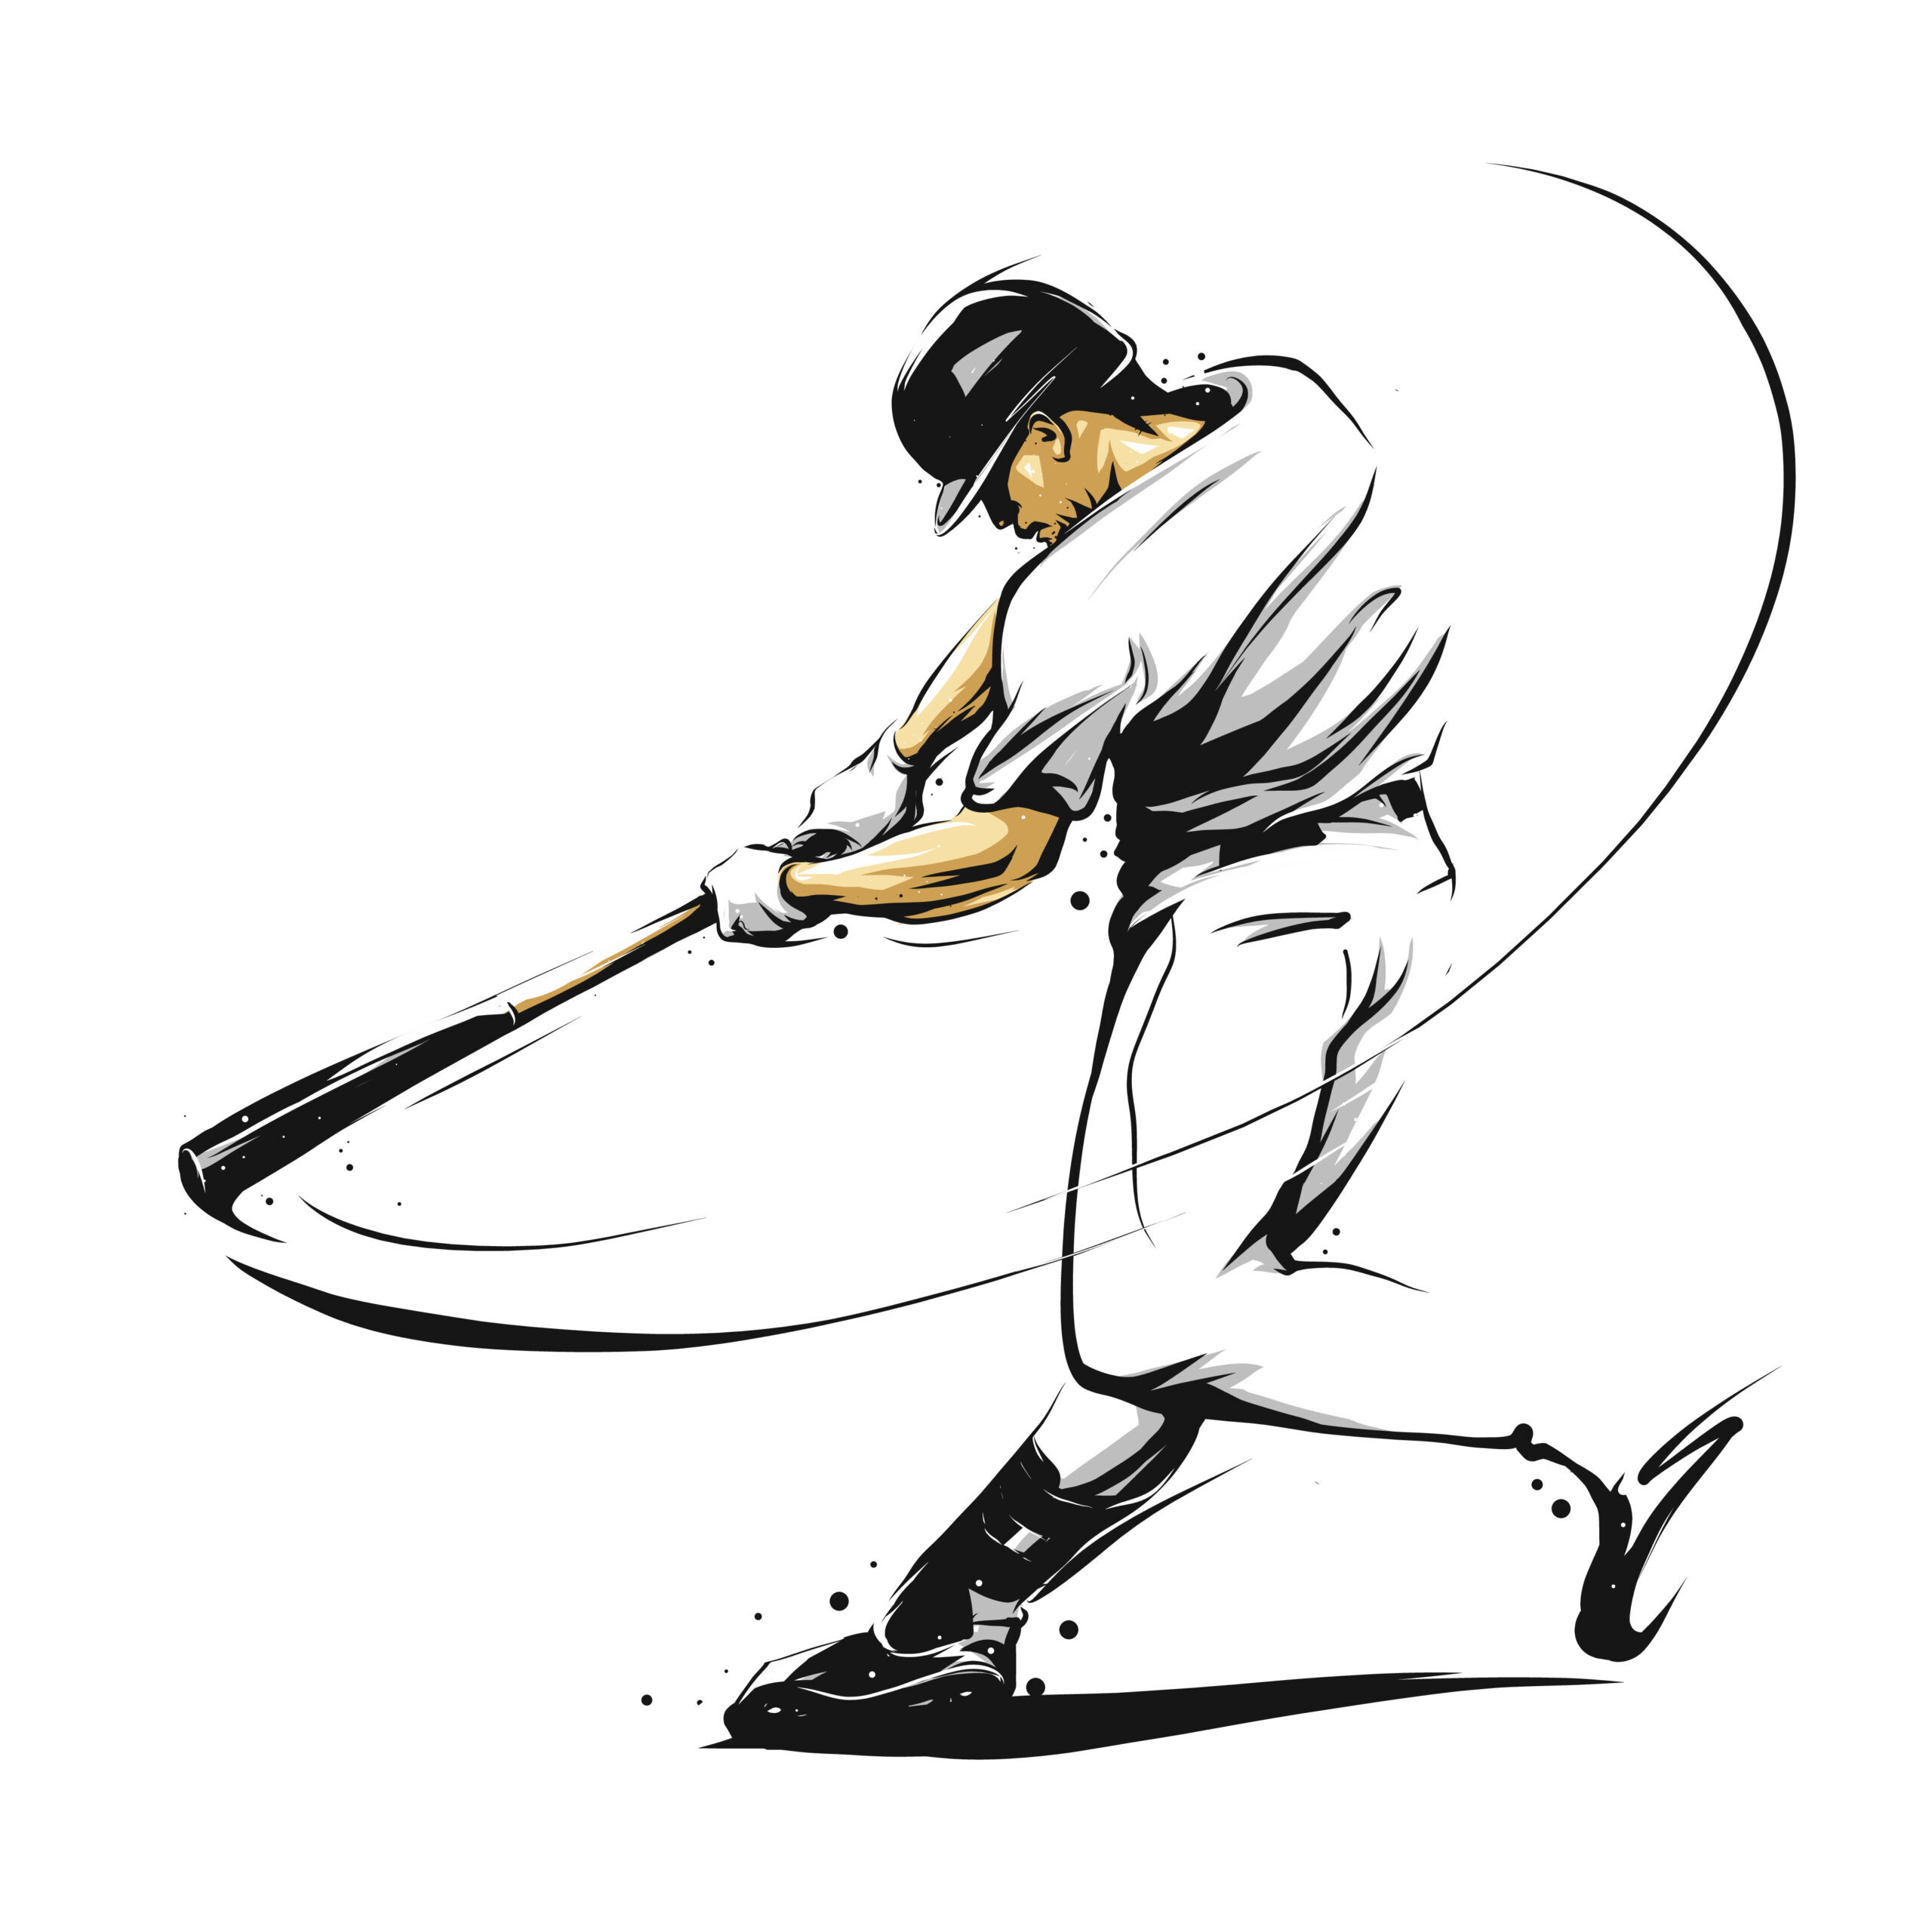 baseball player hitting ball swinging